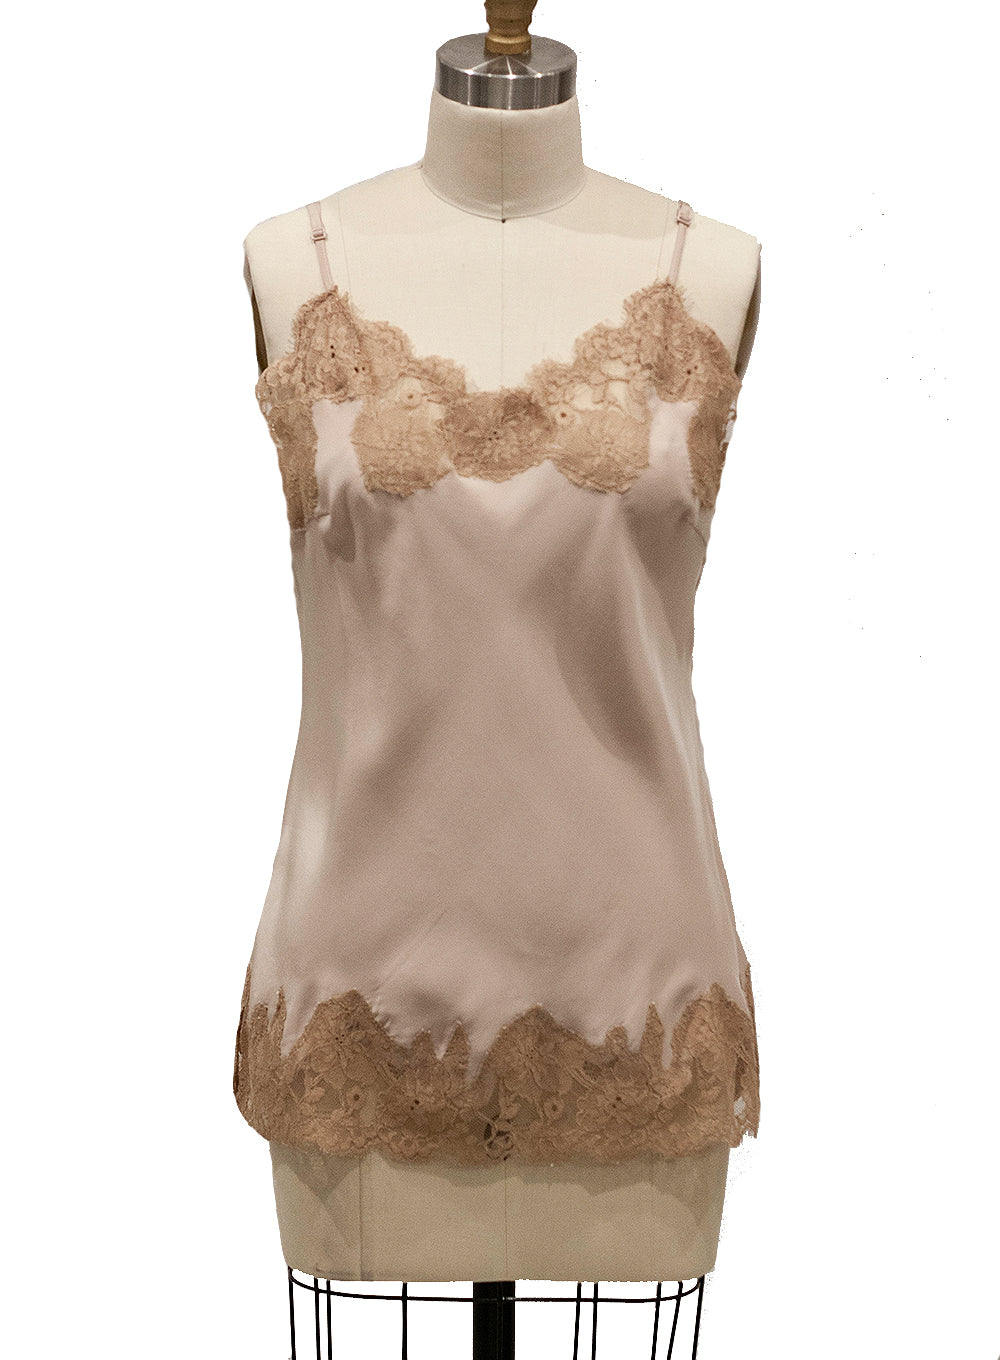 GOLDHAWK | Lace Marilyn Top in Nude/Sand